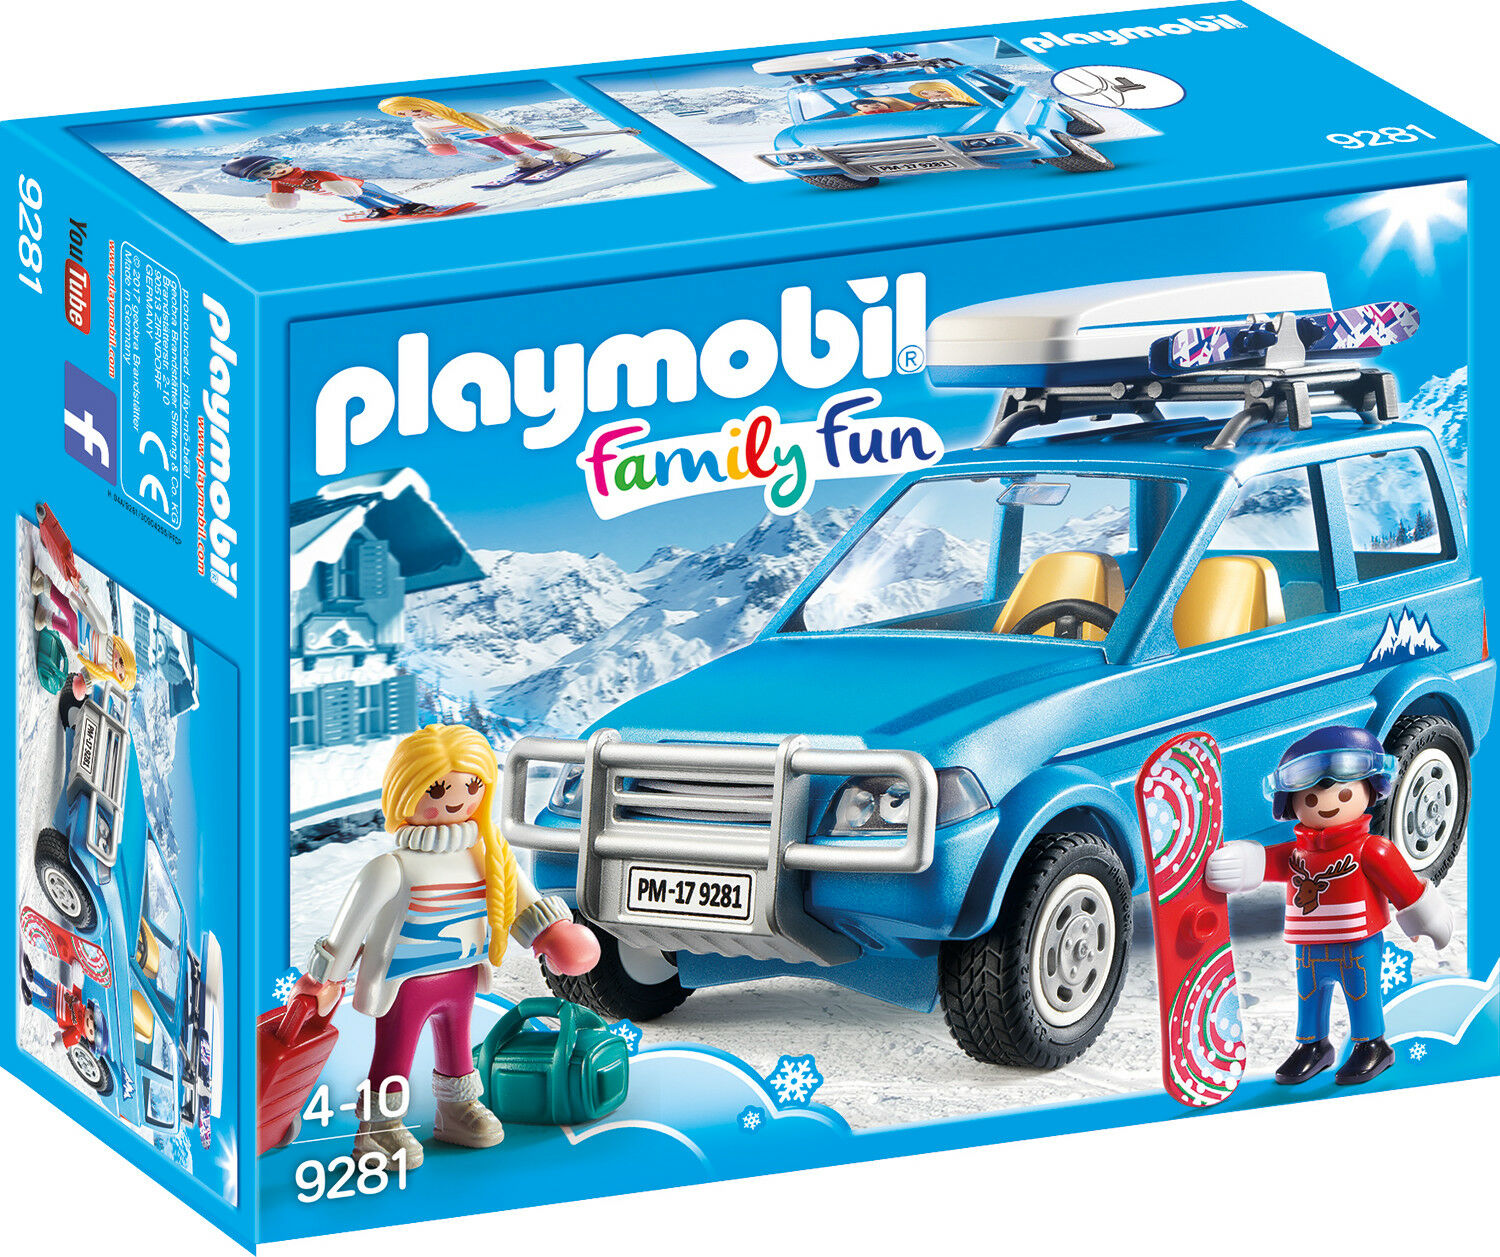 playmobil family fun 9281 auto mit dachbox neu ovp eur 18 88 picclick de. Black Bedroom Furniture Sets. Home Design Ideas